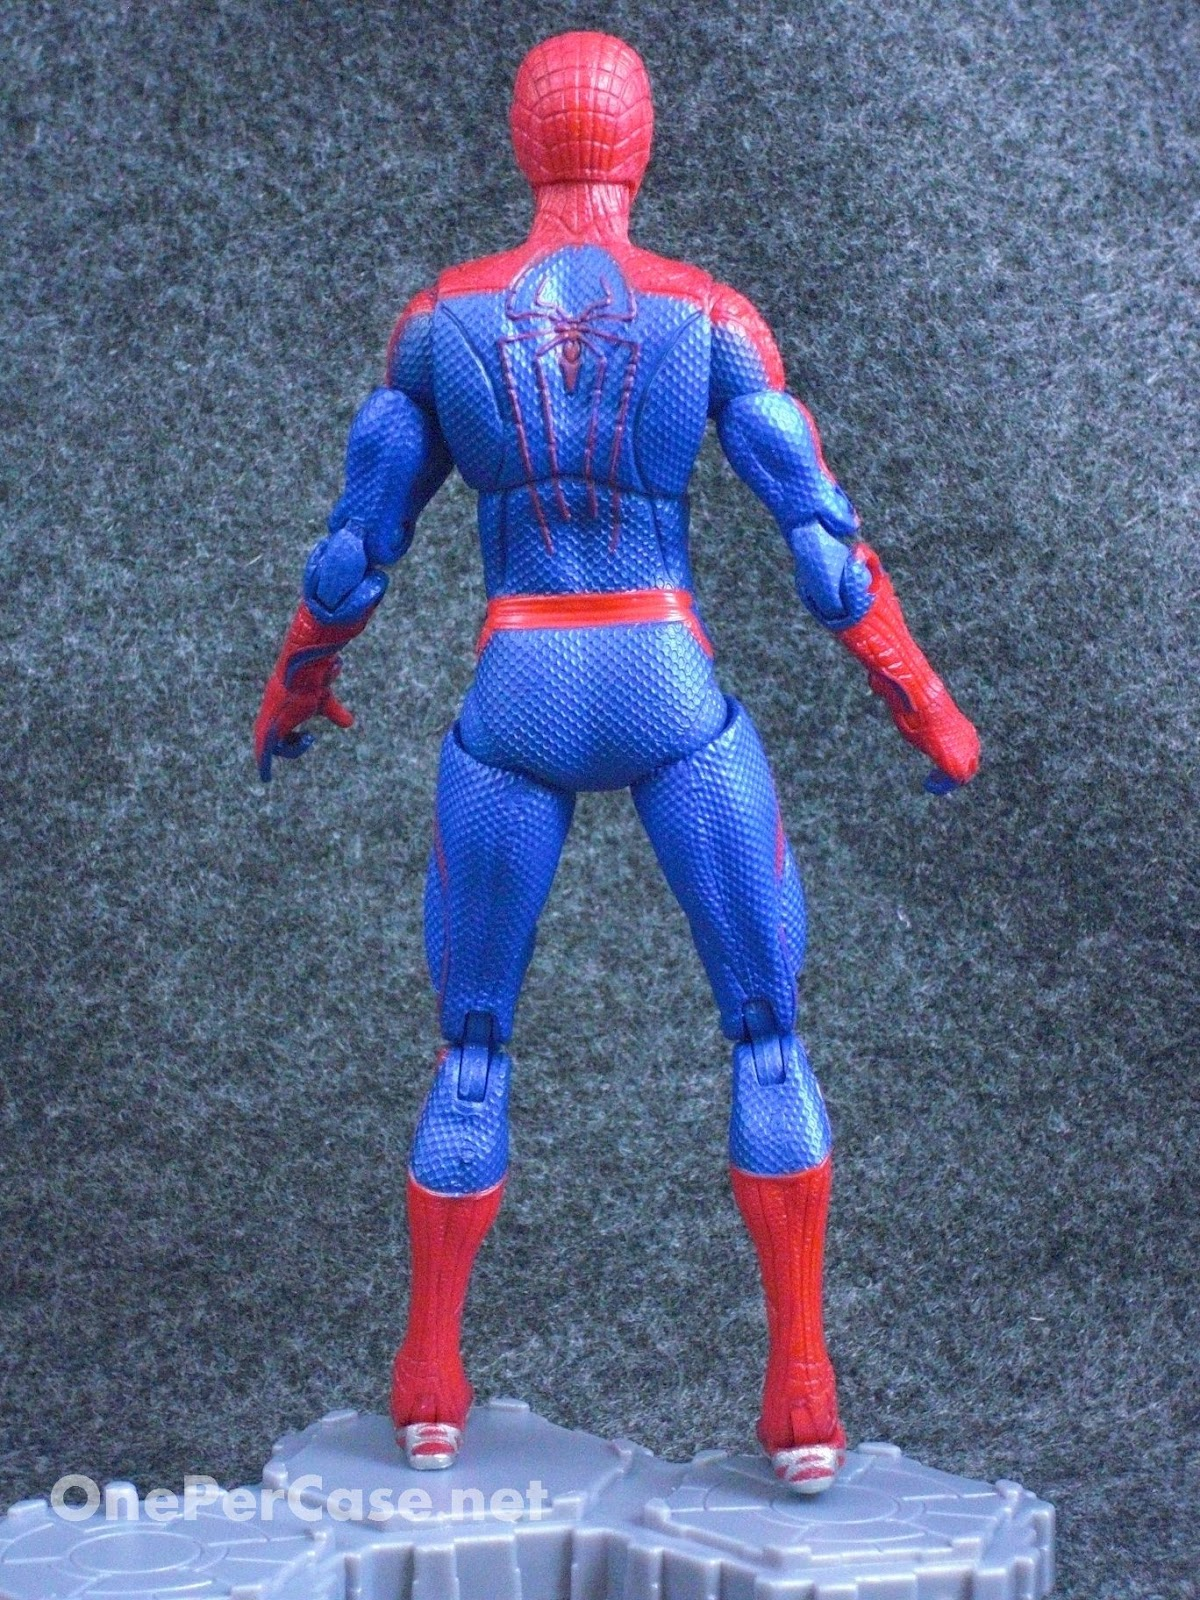 Gteq Atd likewise Ant Body Diagram P additionally A Oh additionally Hasbro Marvel Legends The Amazing Spider Man Movie Walmart Exclusive Action Figure Inch One Per Case also How To Draw An Astronaut Step. on label parts of a spider